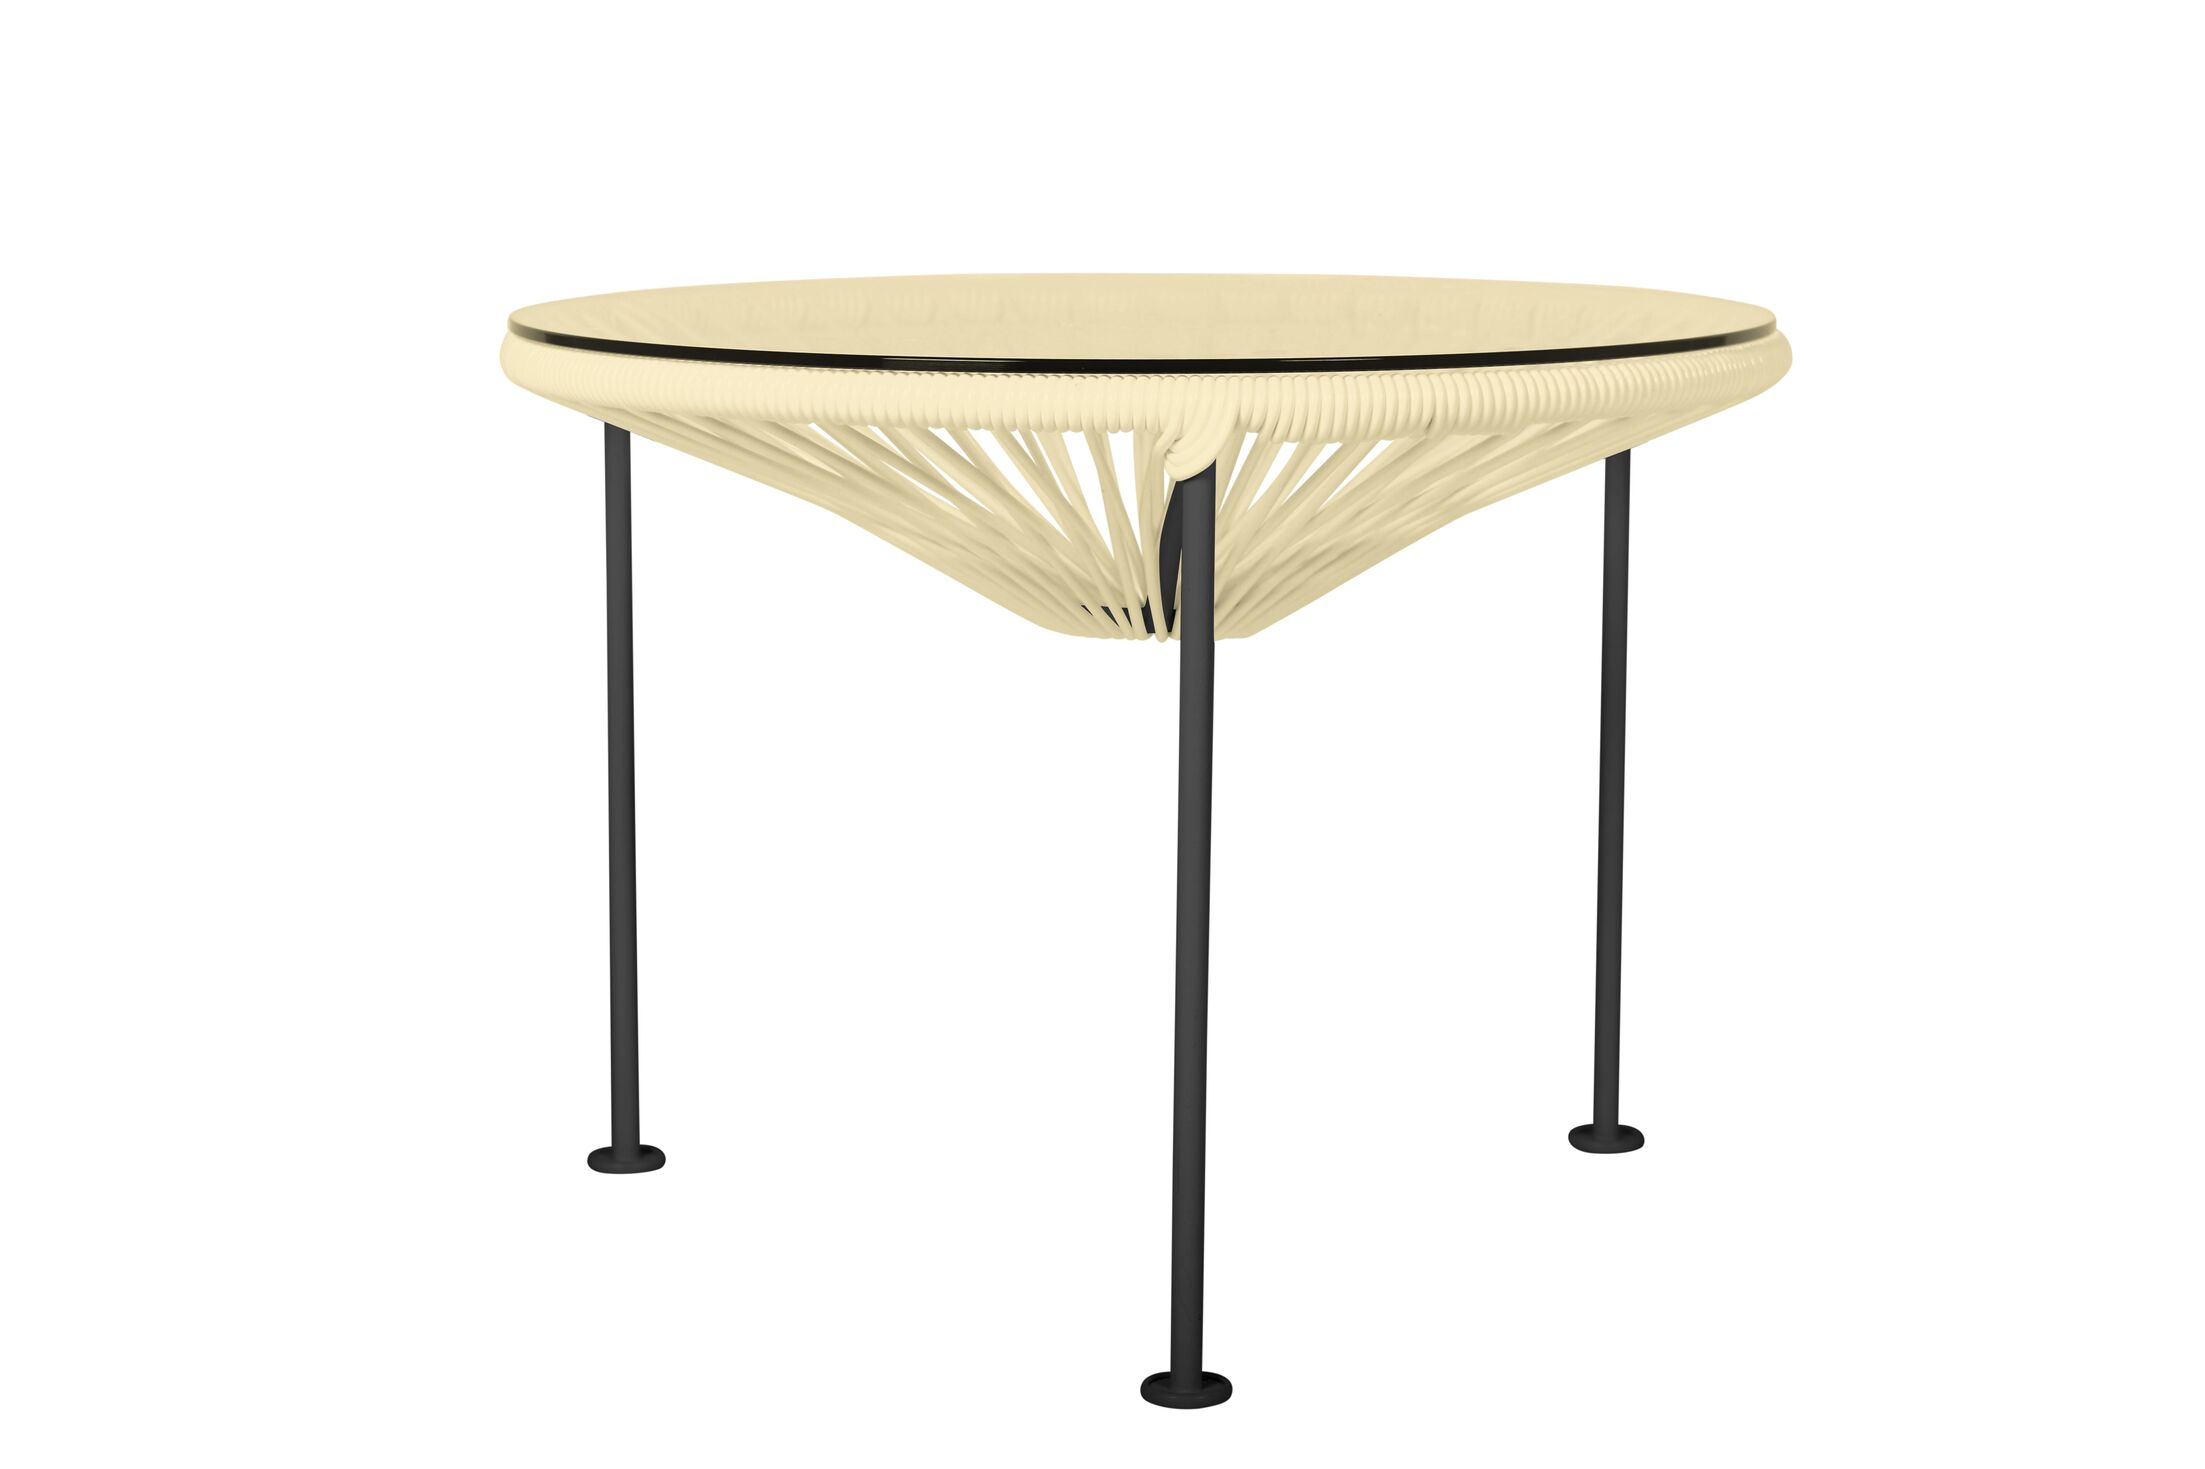 Cobby End Table Table Base Color: Black, Table Top Color: Ivory